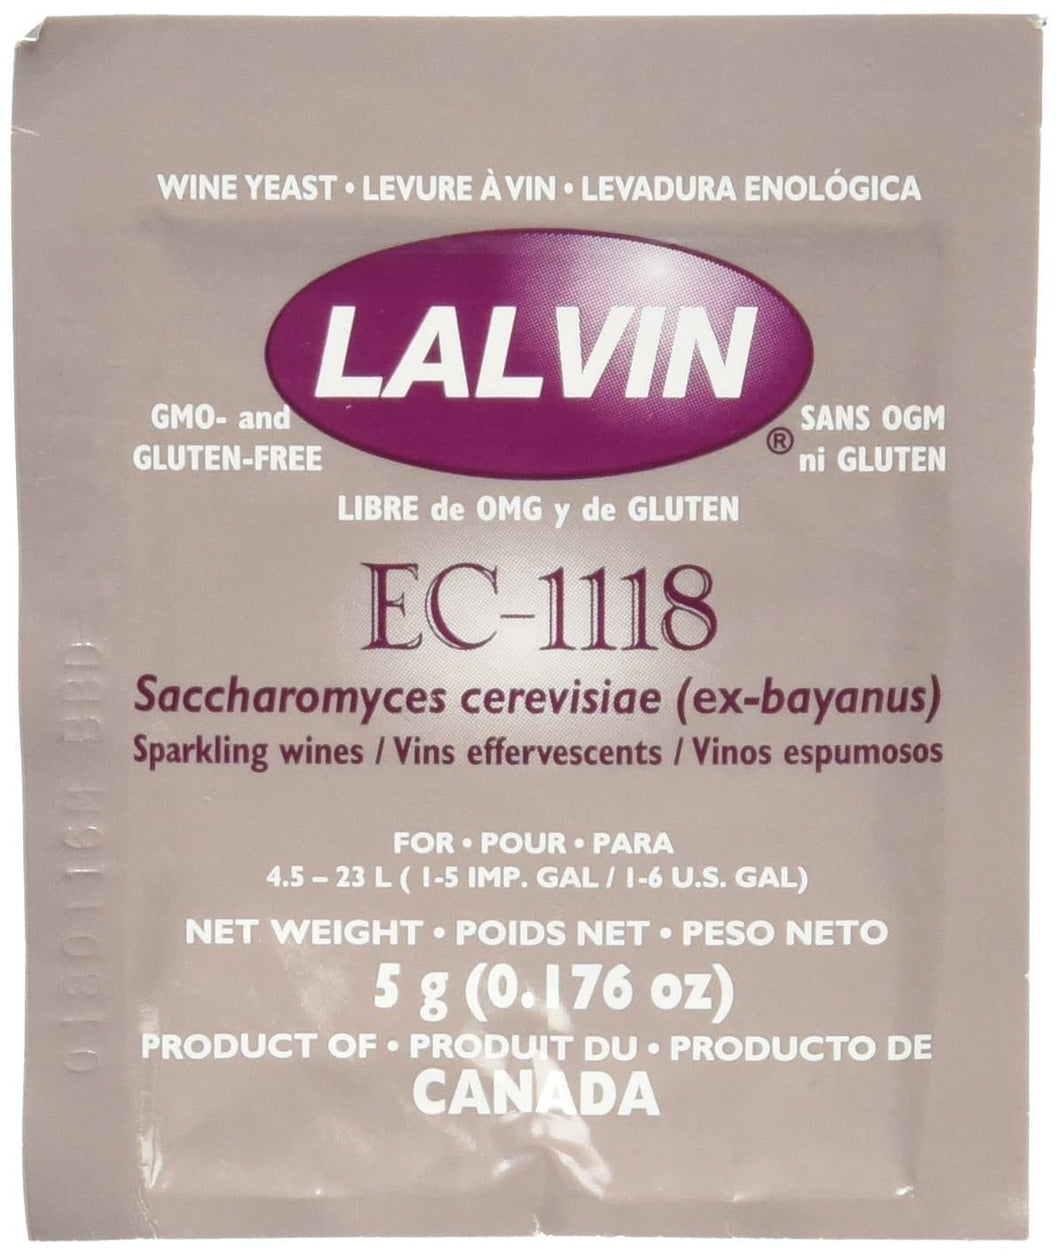 EC-1118 Wine Yeast - Wine Craft